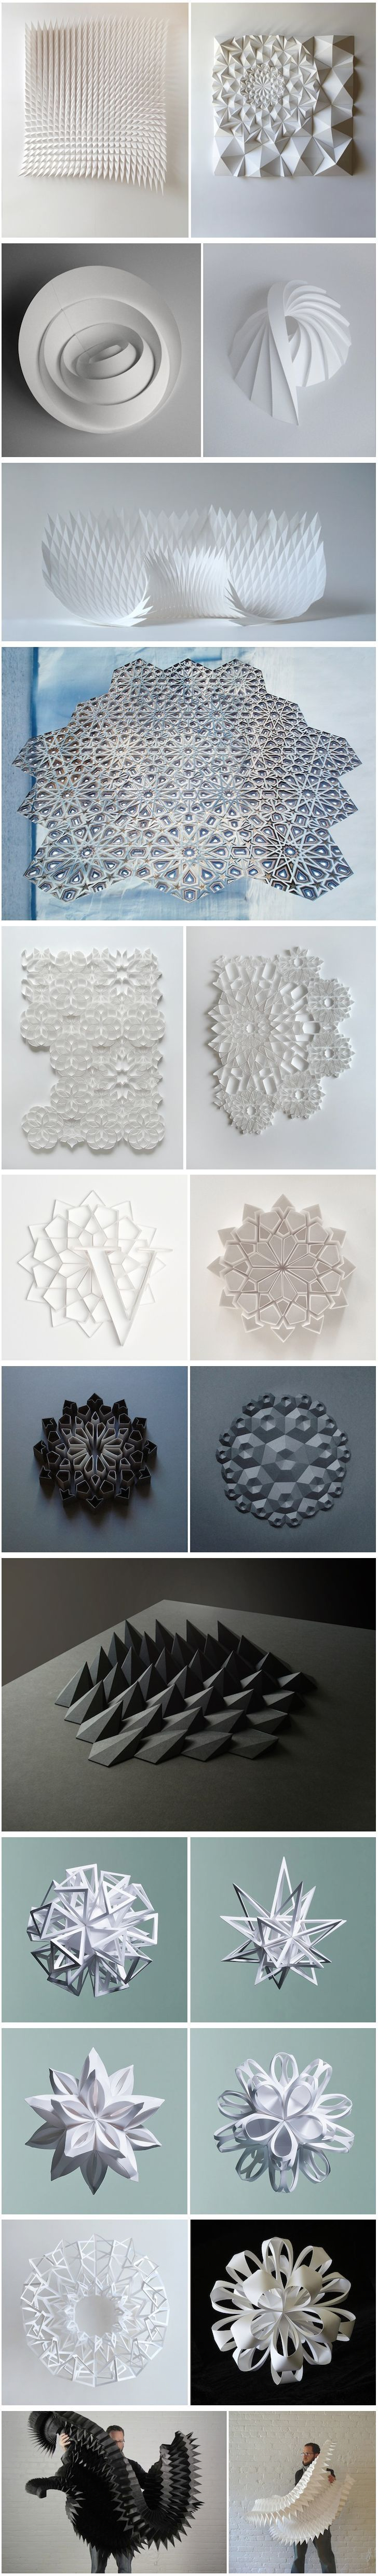 Geometric Paper Sculptures by Matt Shlian